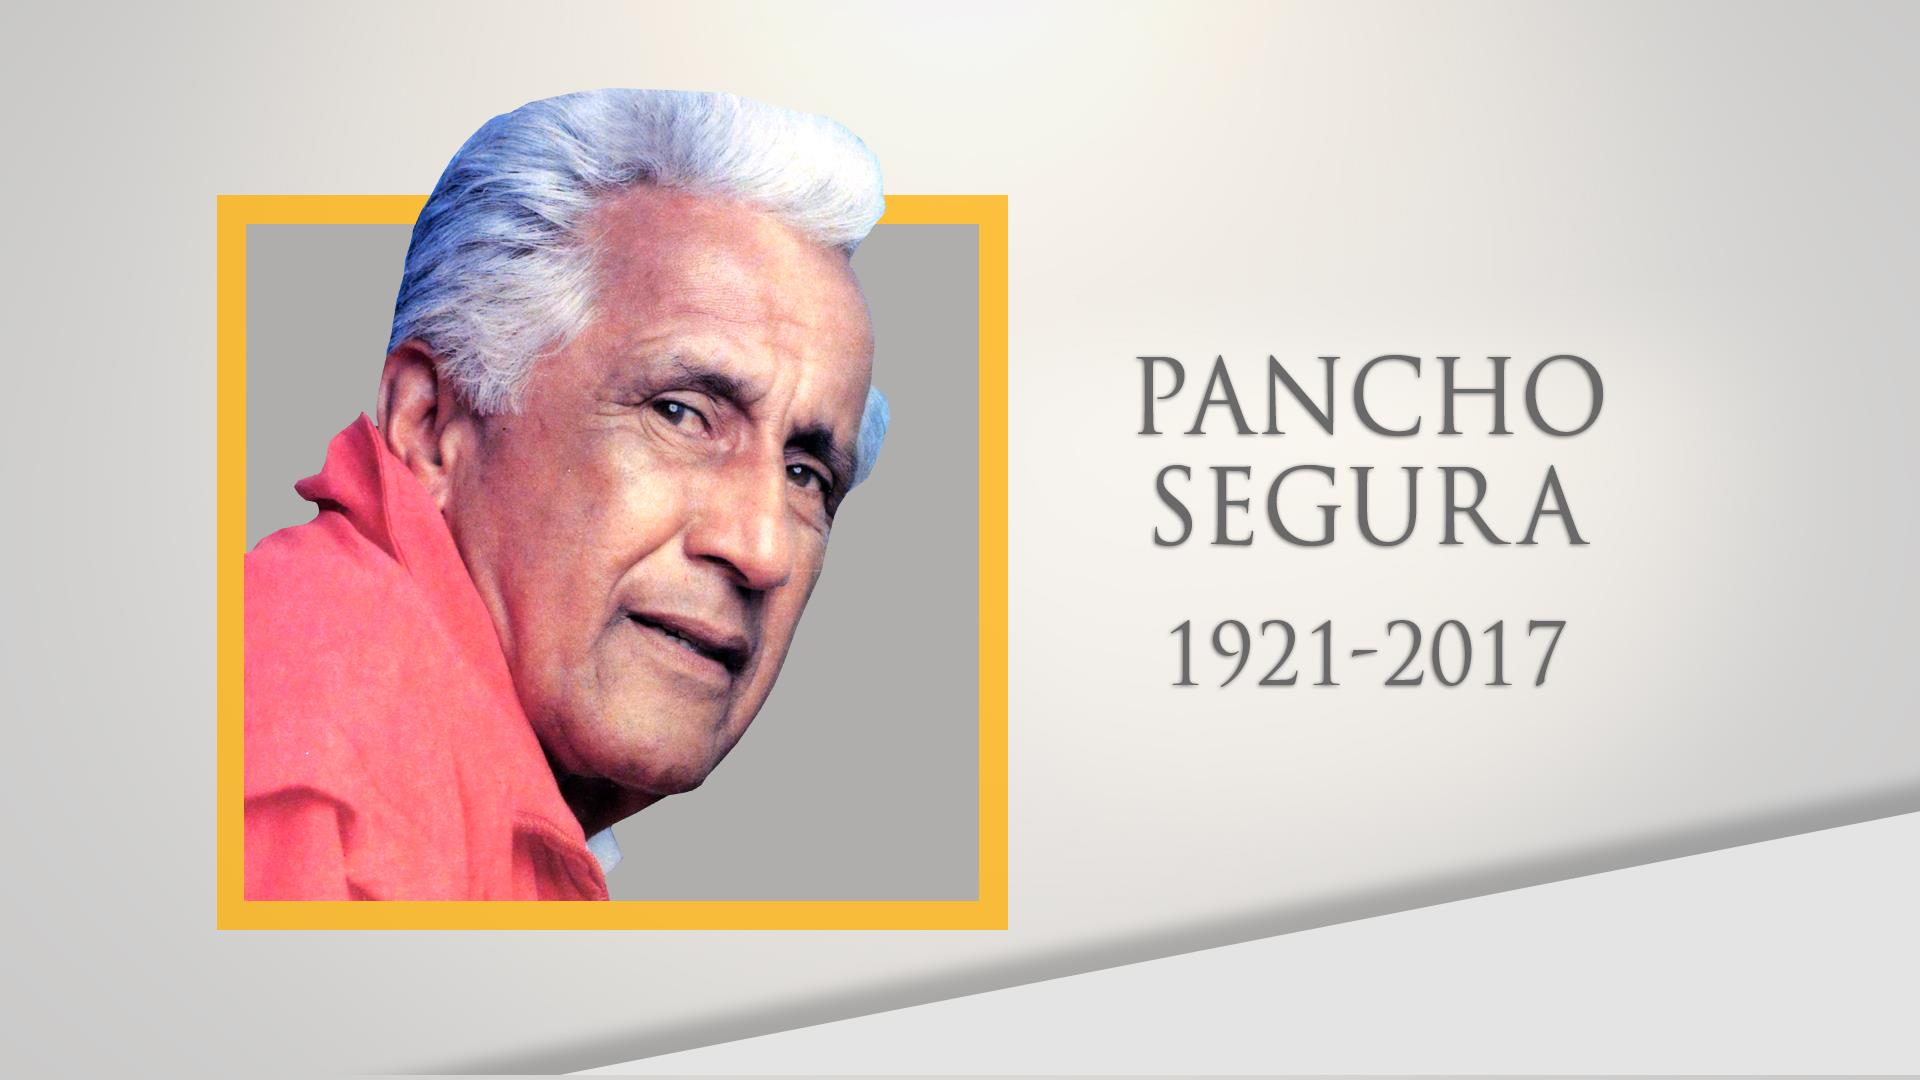 Life well lived Tennis great Pancho Segura s at 96 TODAY